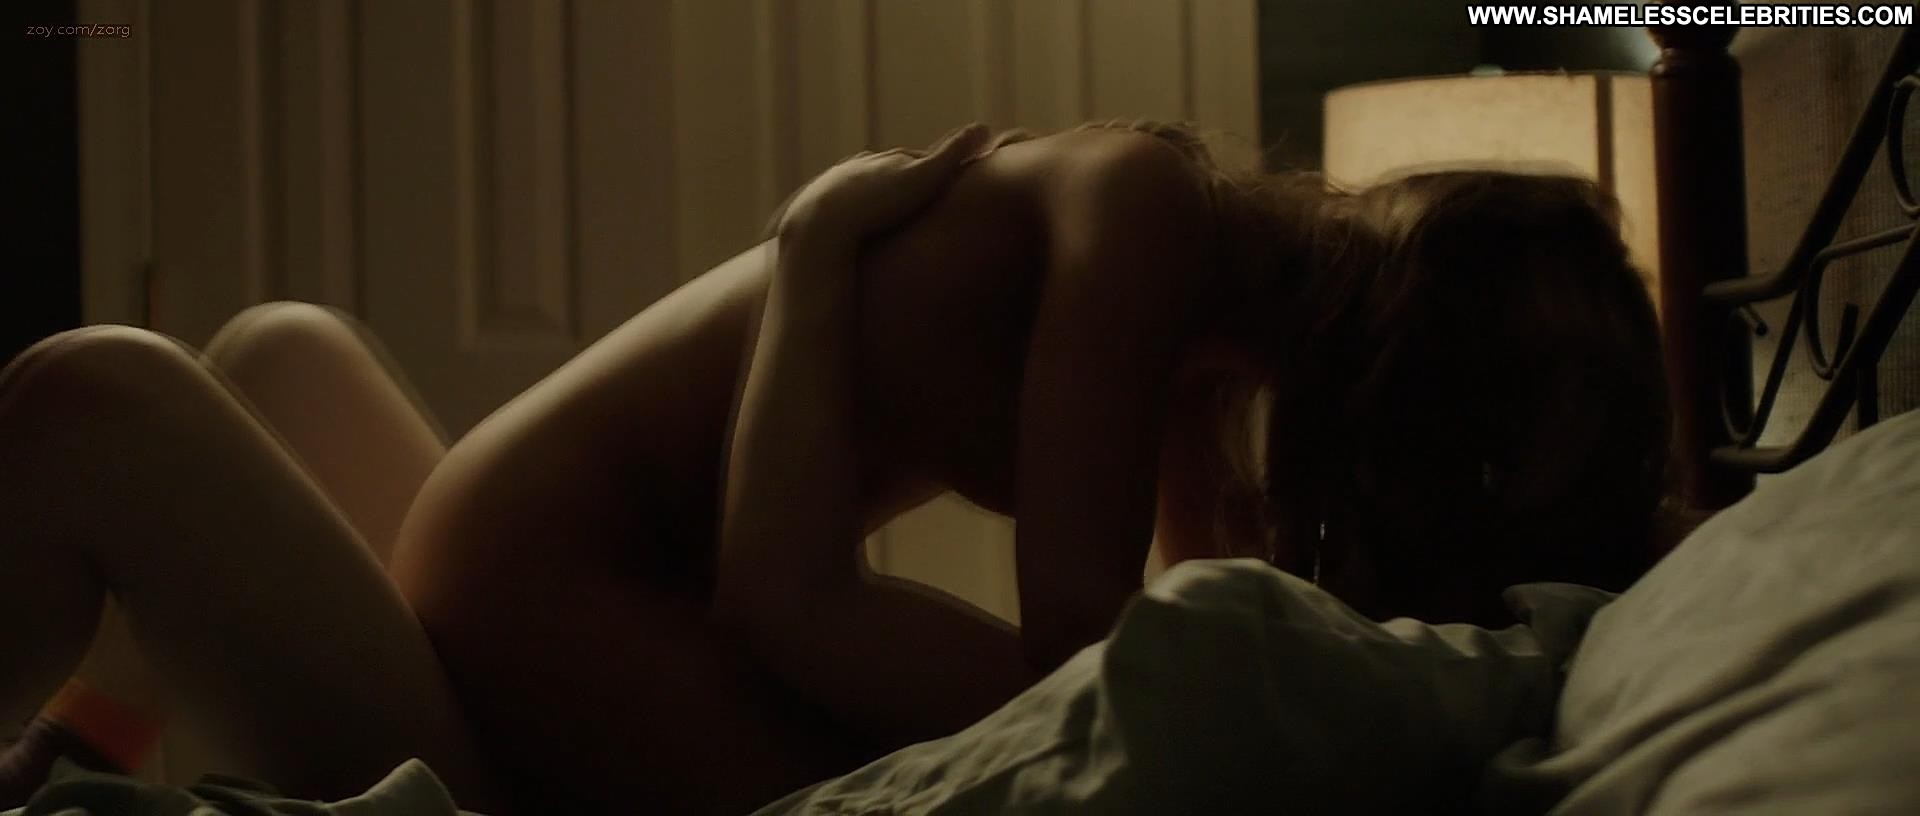 hall plus one celebrity posing hot nude flashing topless hot boobs sex